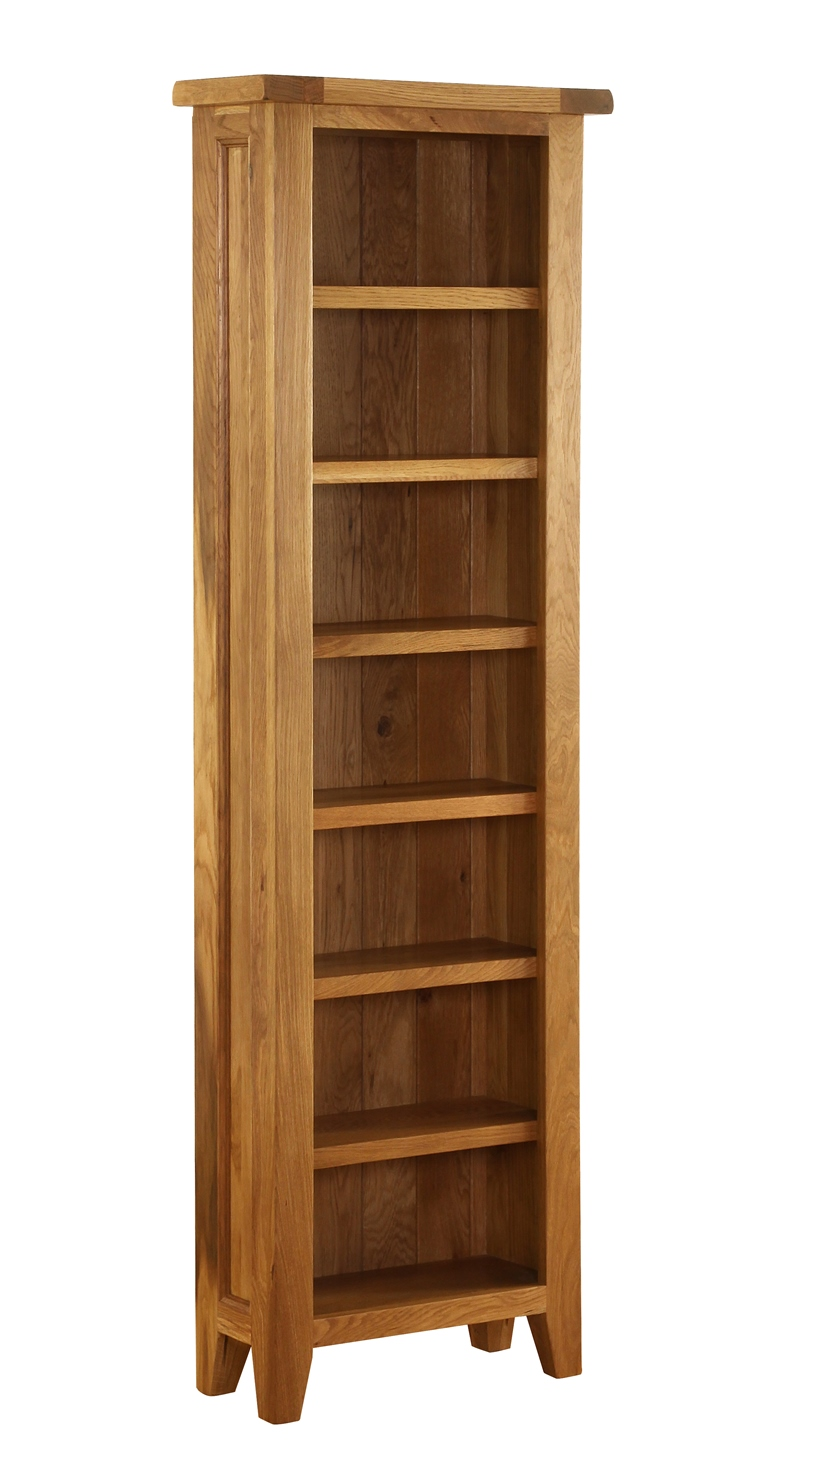 OAK COLLECTION CD/DVD BOOKCASE w 56 x d 24 x h 185 cm € 352 Product Code: VXA011